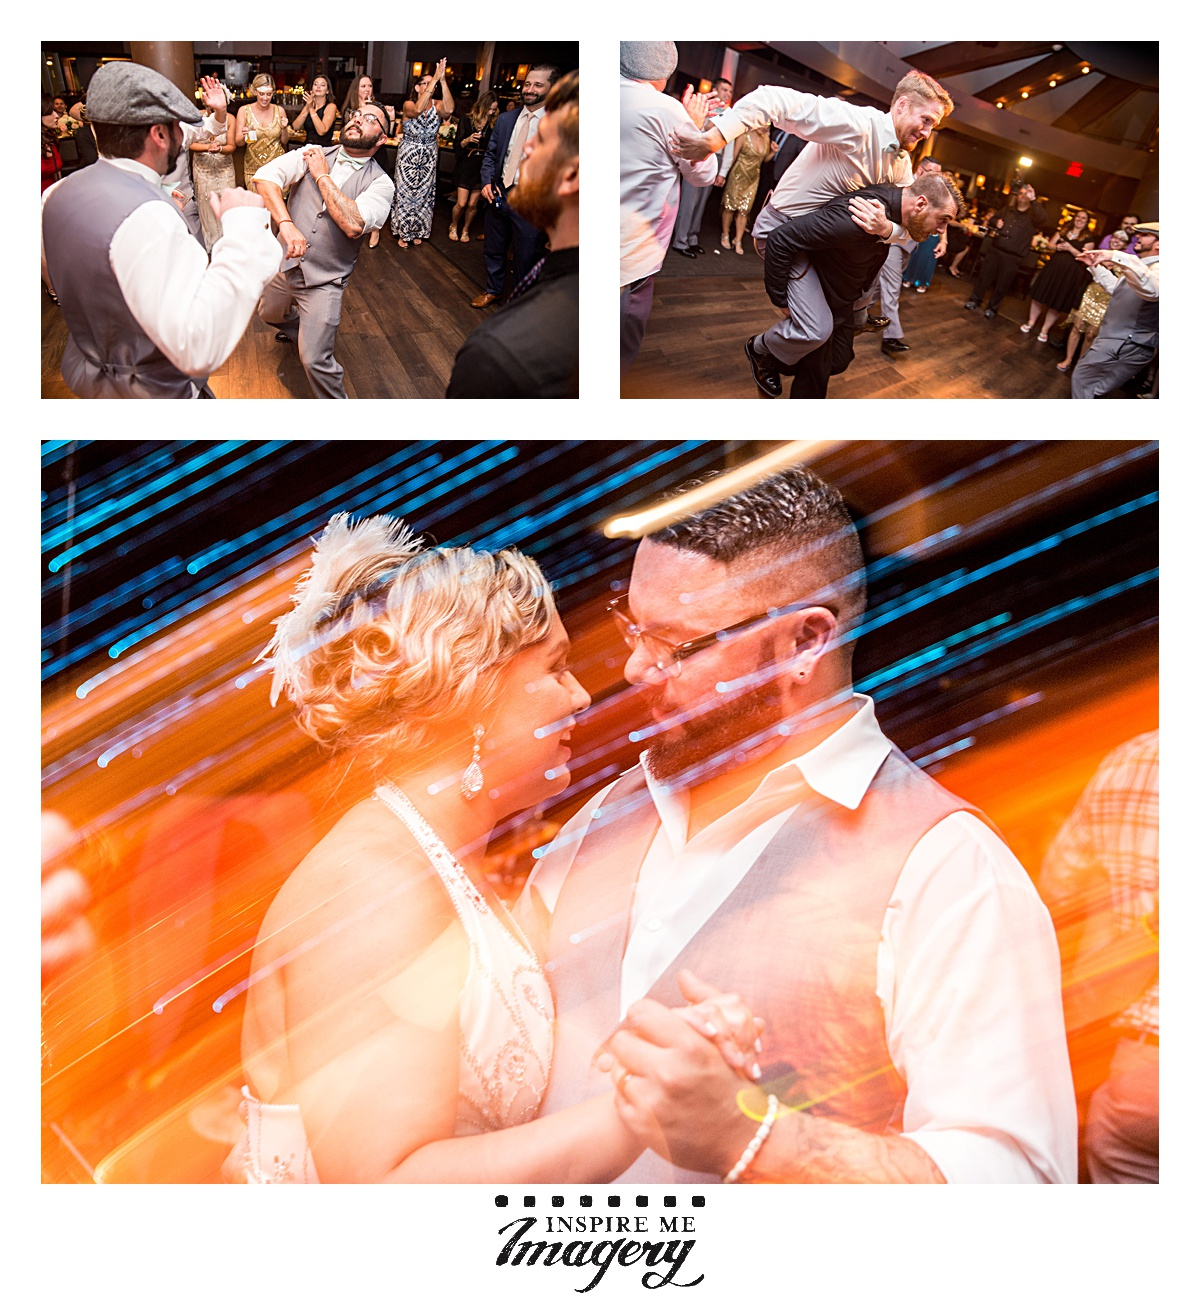 The reception was so wonderful. Everyone danced the night away, and it was an amazing ending to an amazing day.